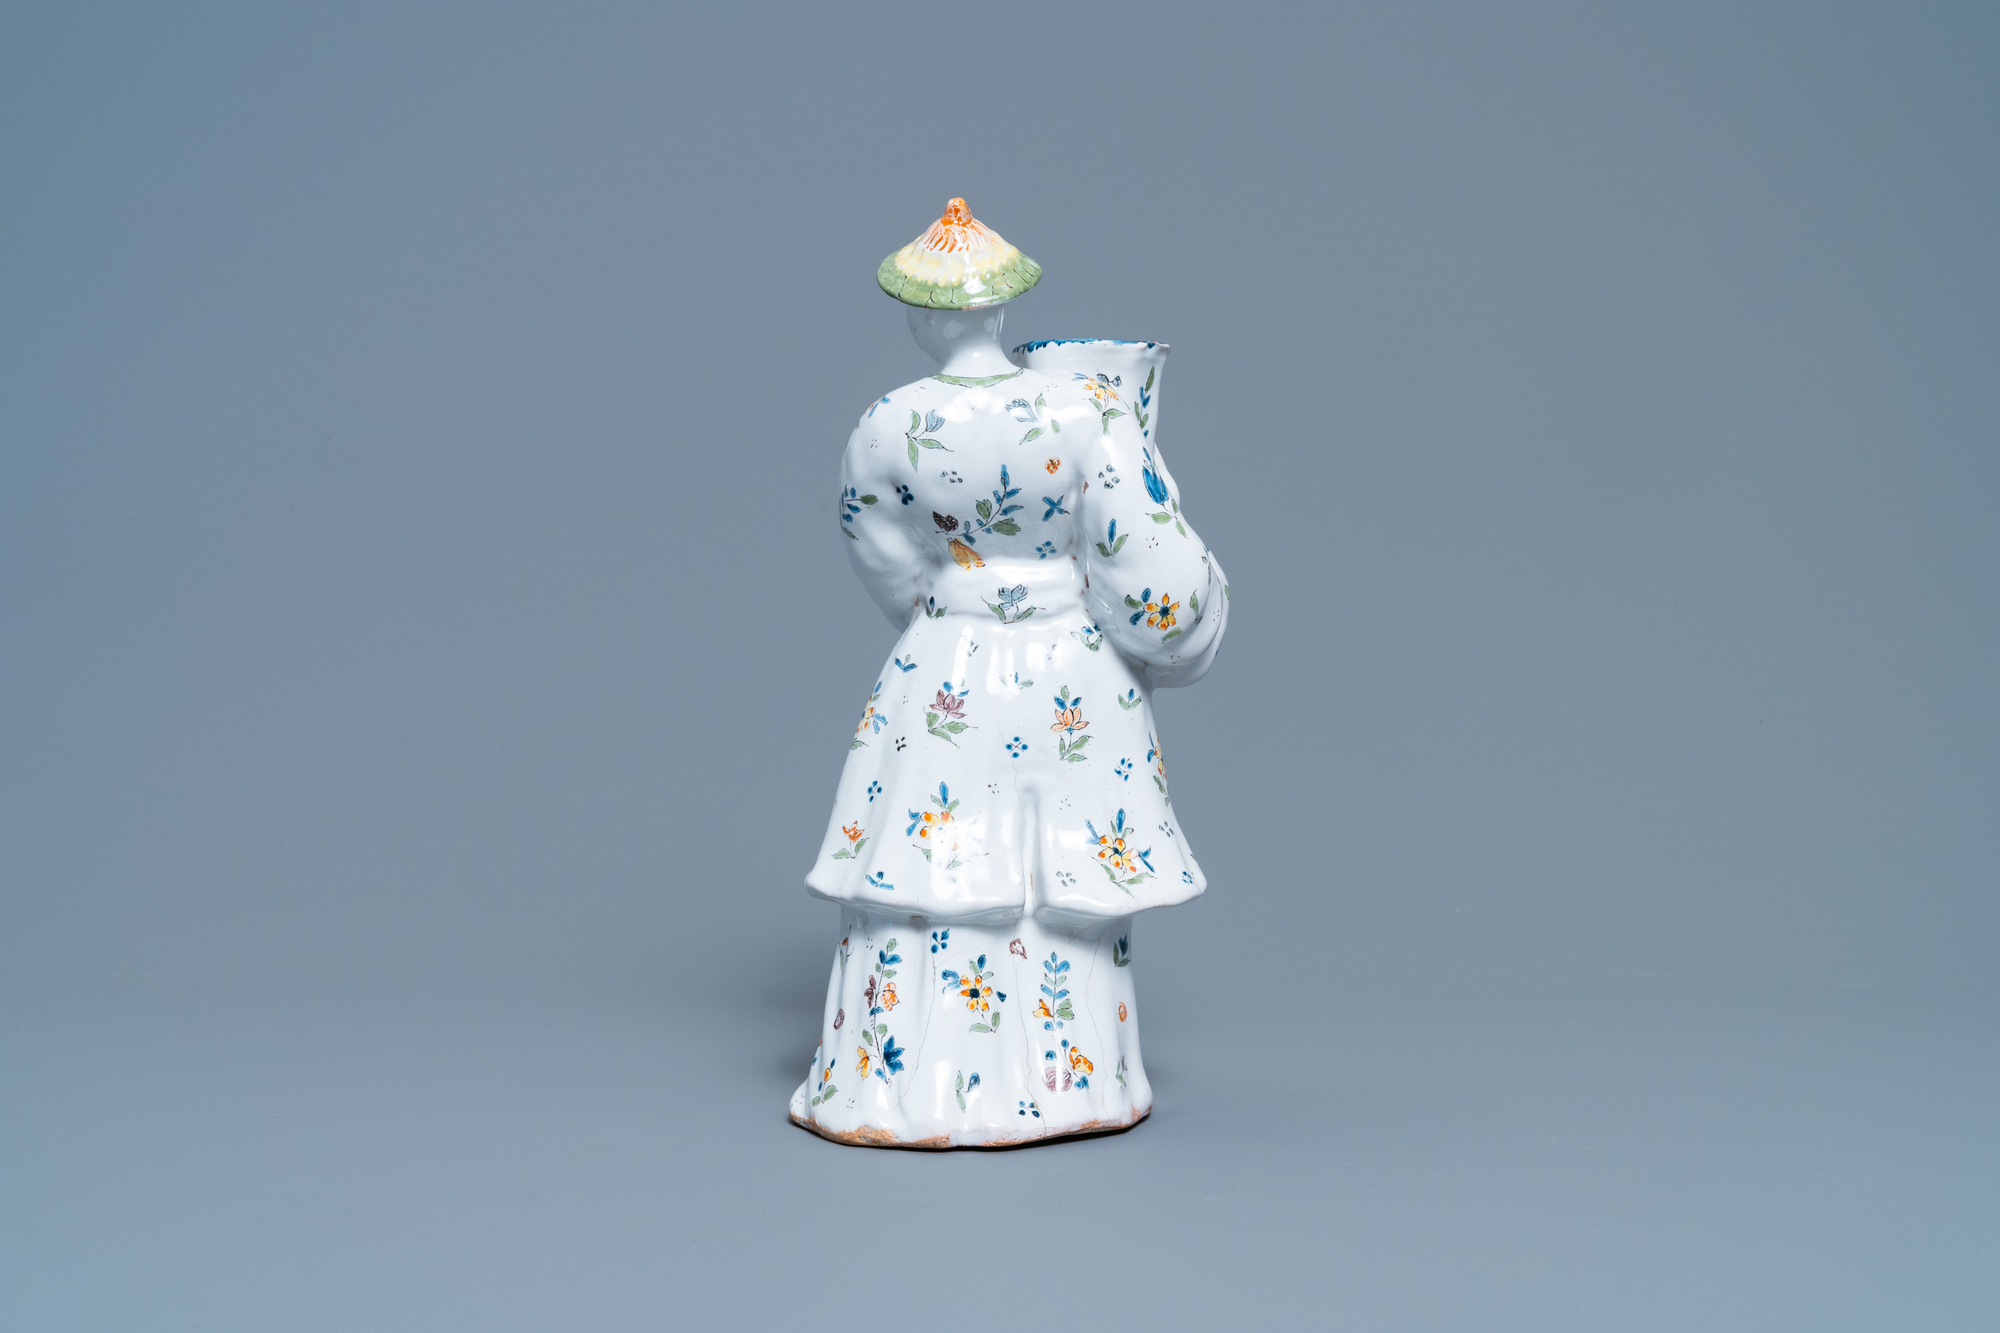 A polychrome French faience candle holder in the shape of a Chinaman, Lille, 18th C. - Image 4 of 7